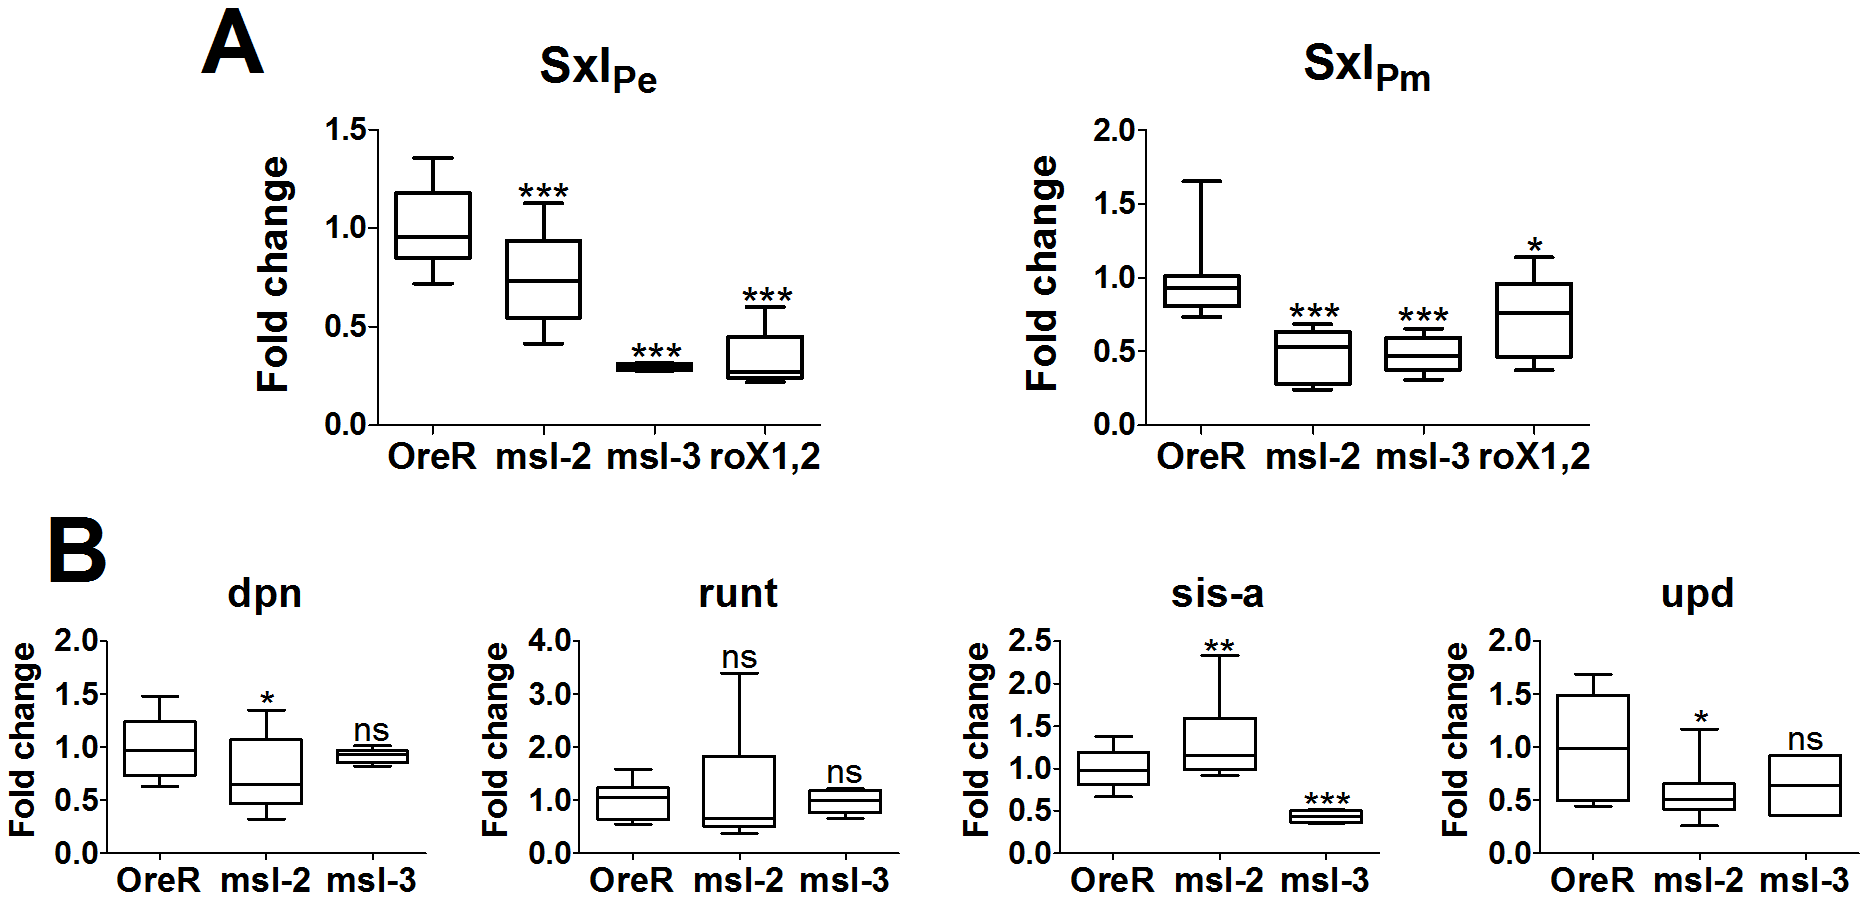 Change in mRNA expression for dosage compensated and control genes compared to Ore R.